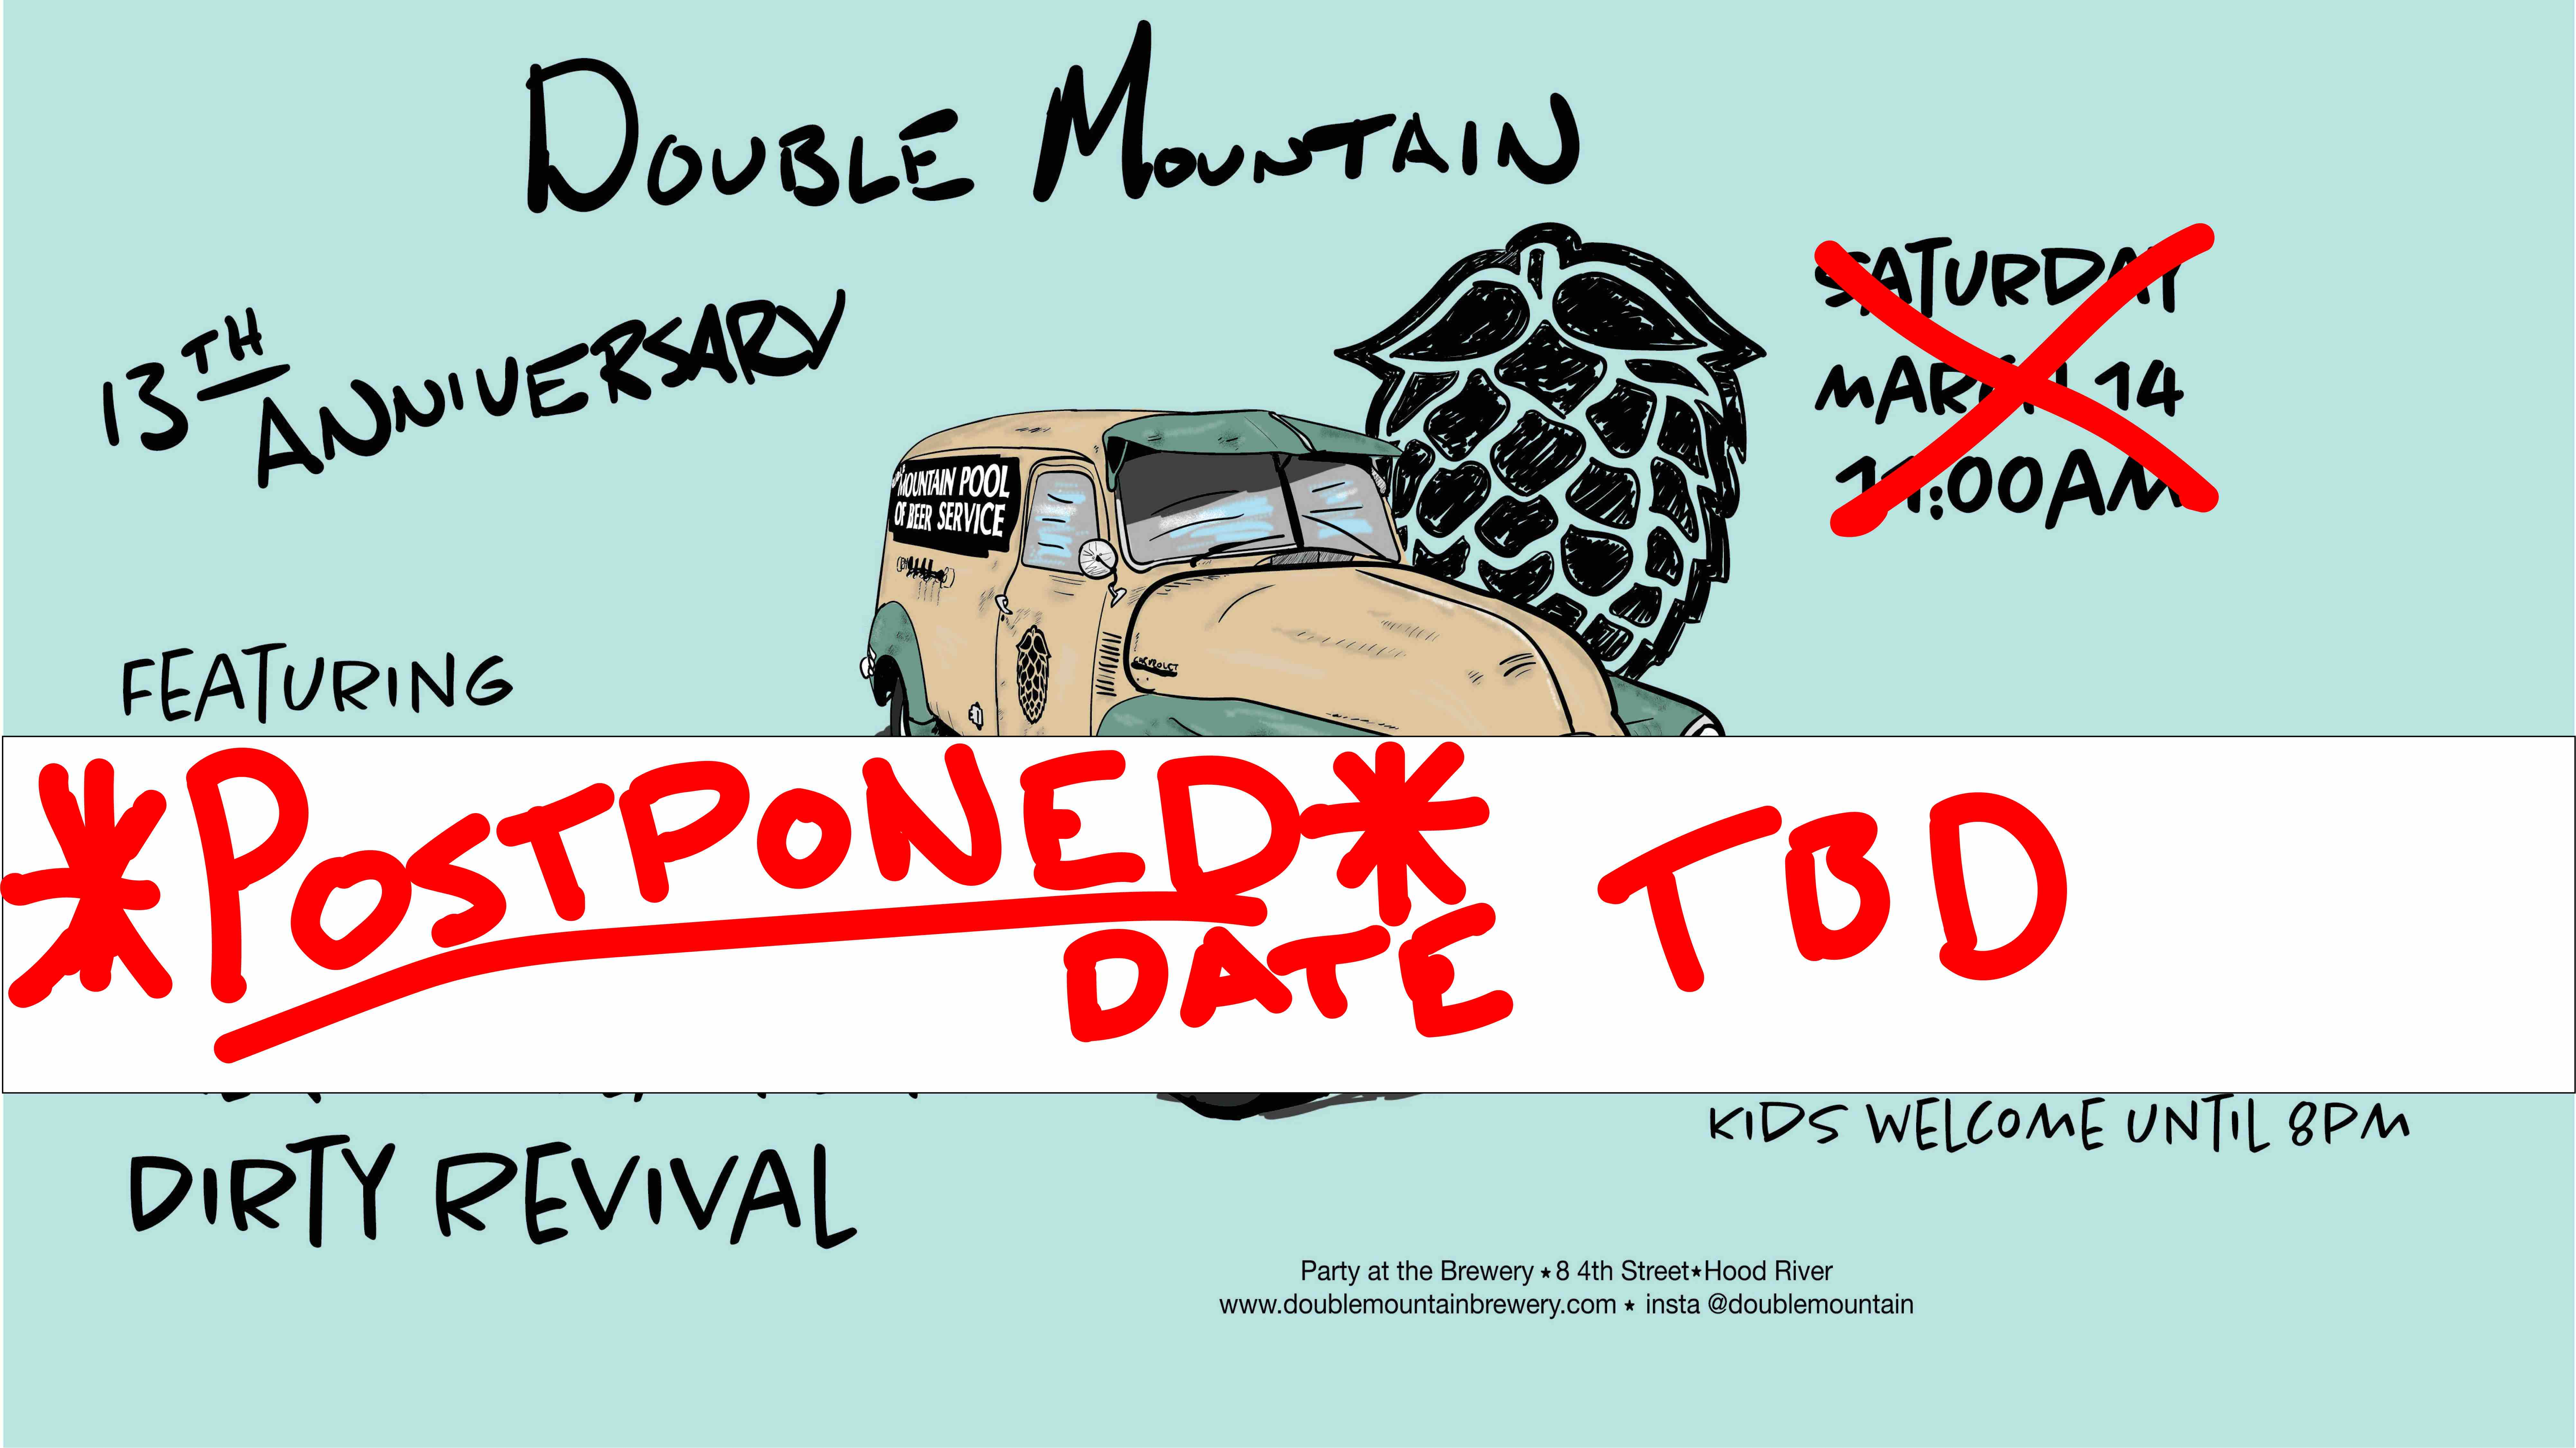 Double Mountain 13th Anniversary POSTPONED until June 27th